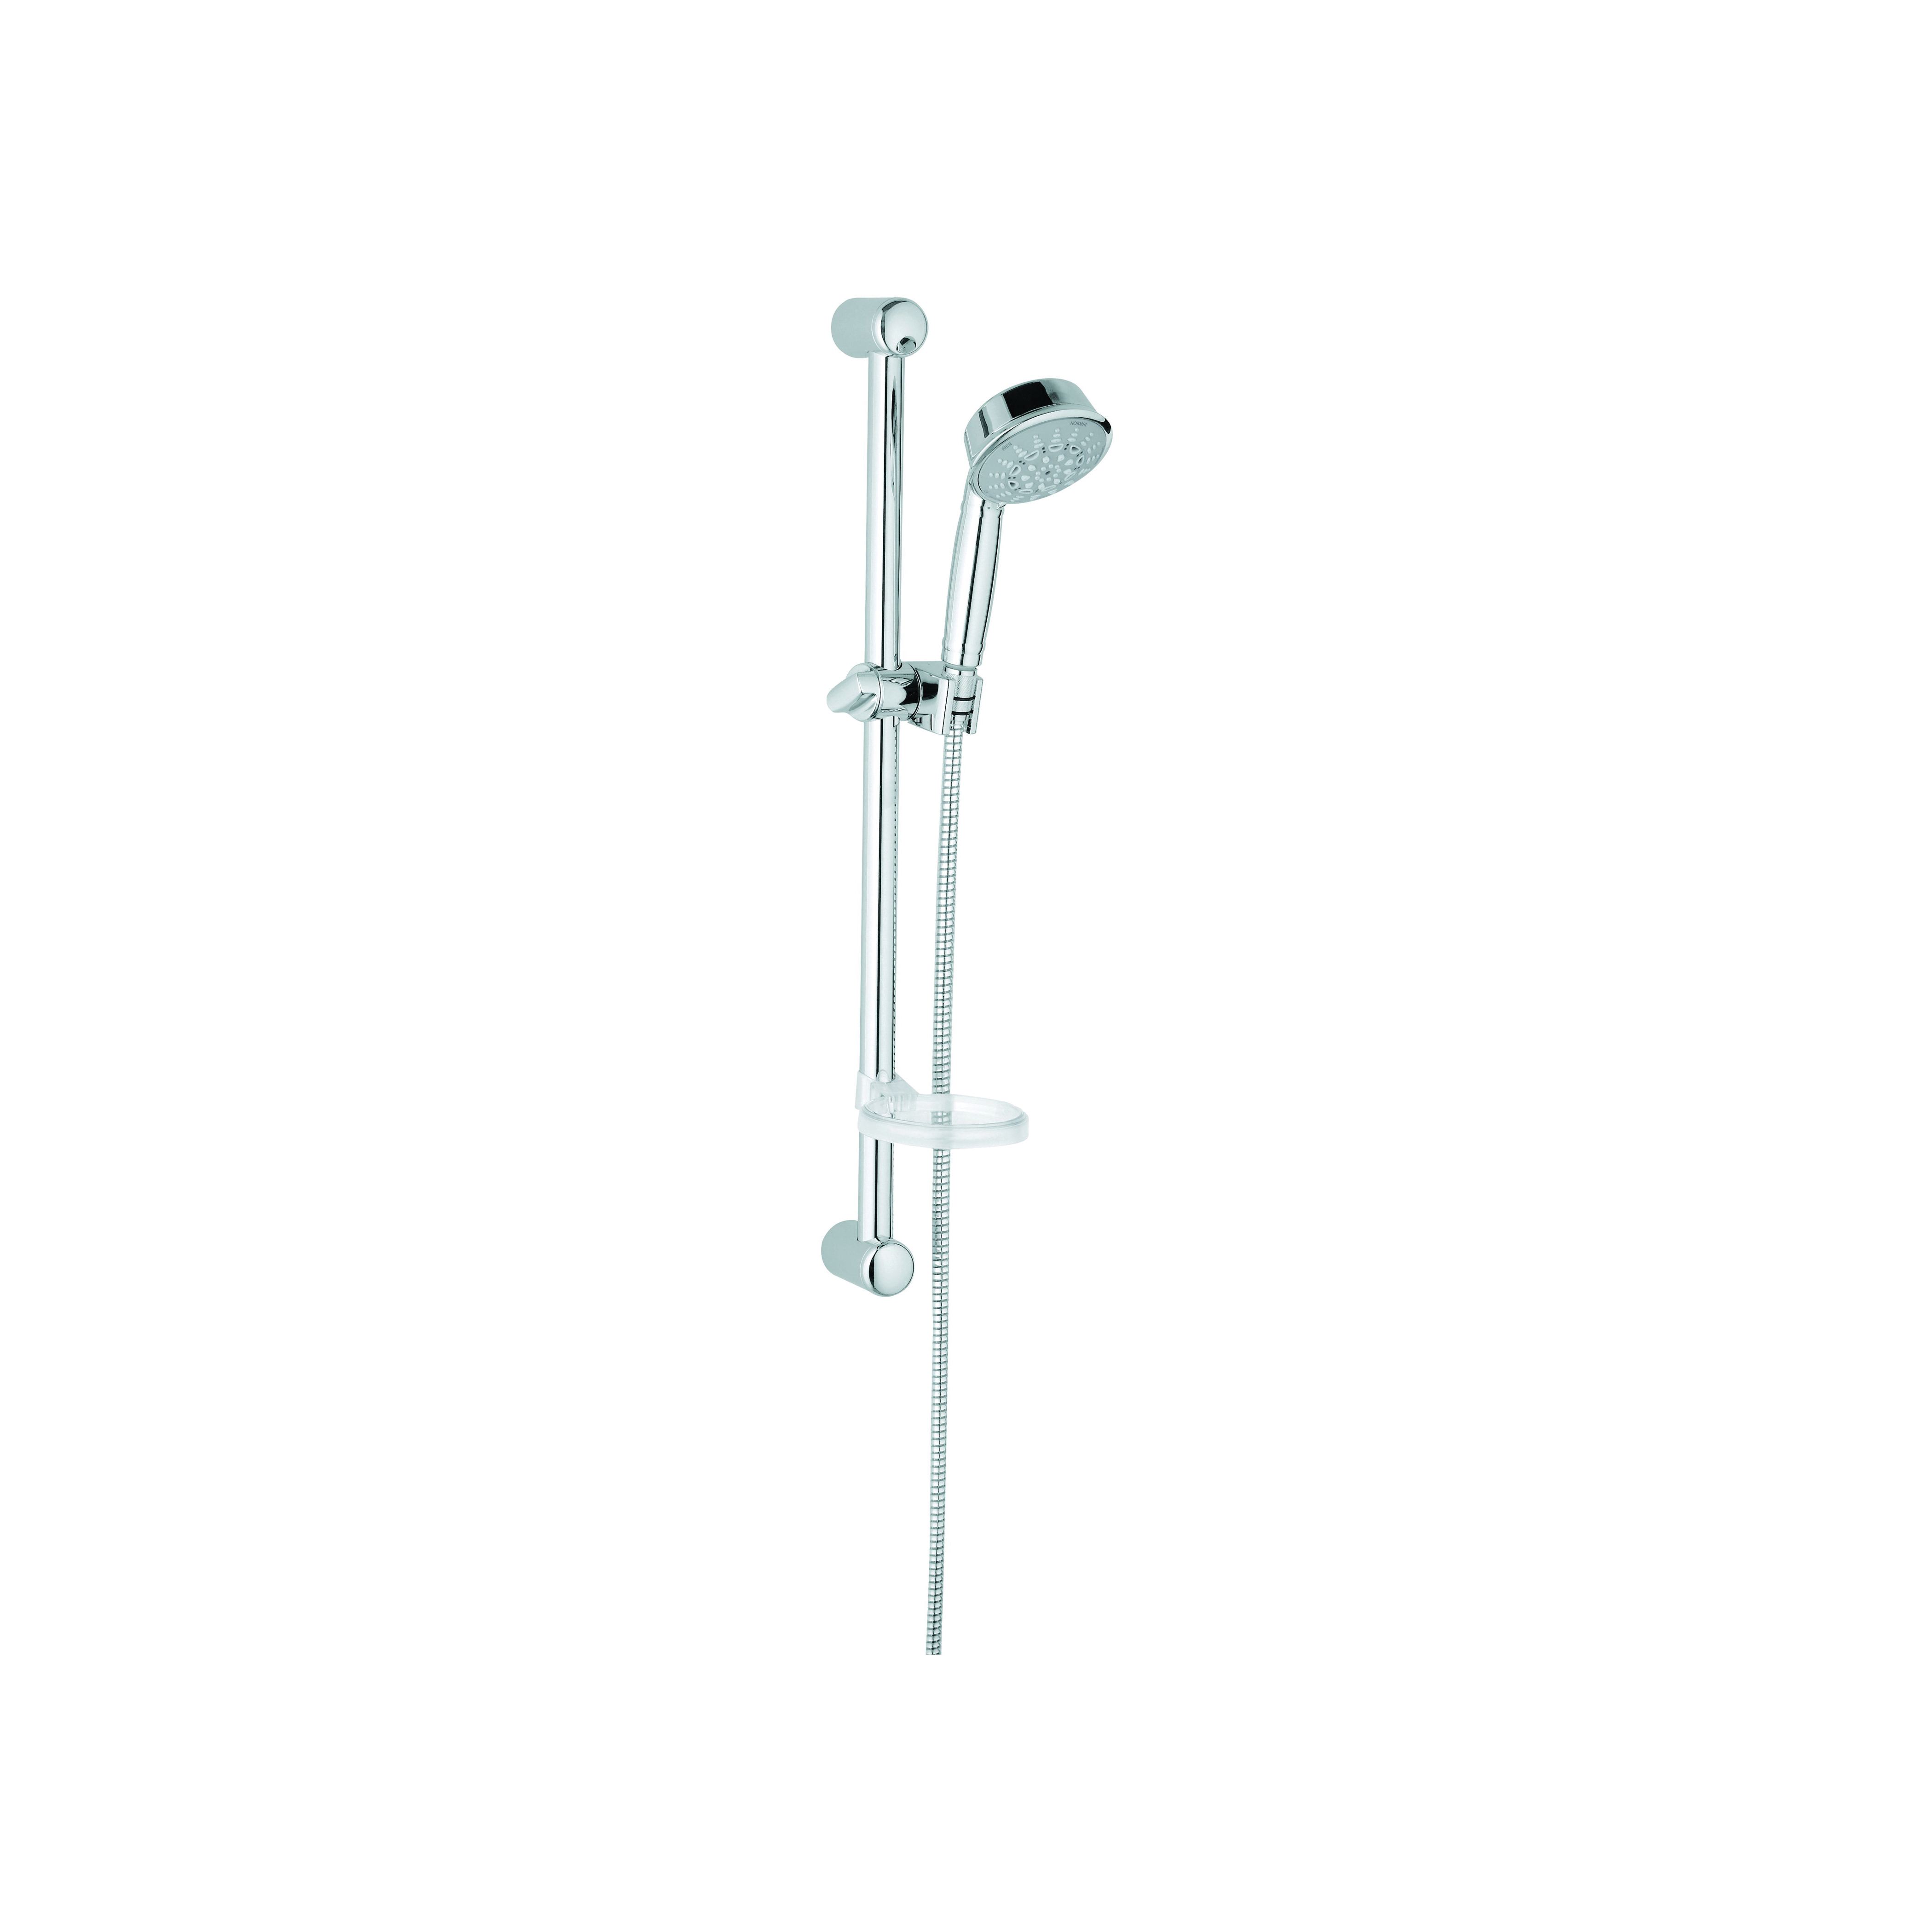 GROHE 27142000 Relexa Rustic 100 Shower Set, (1) Shower Head, 2.5 gpm, 69 in L Hose, G-1/2, Slide Bar: Yes, Chrome Plated, Import